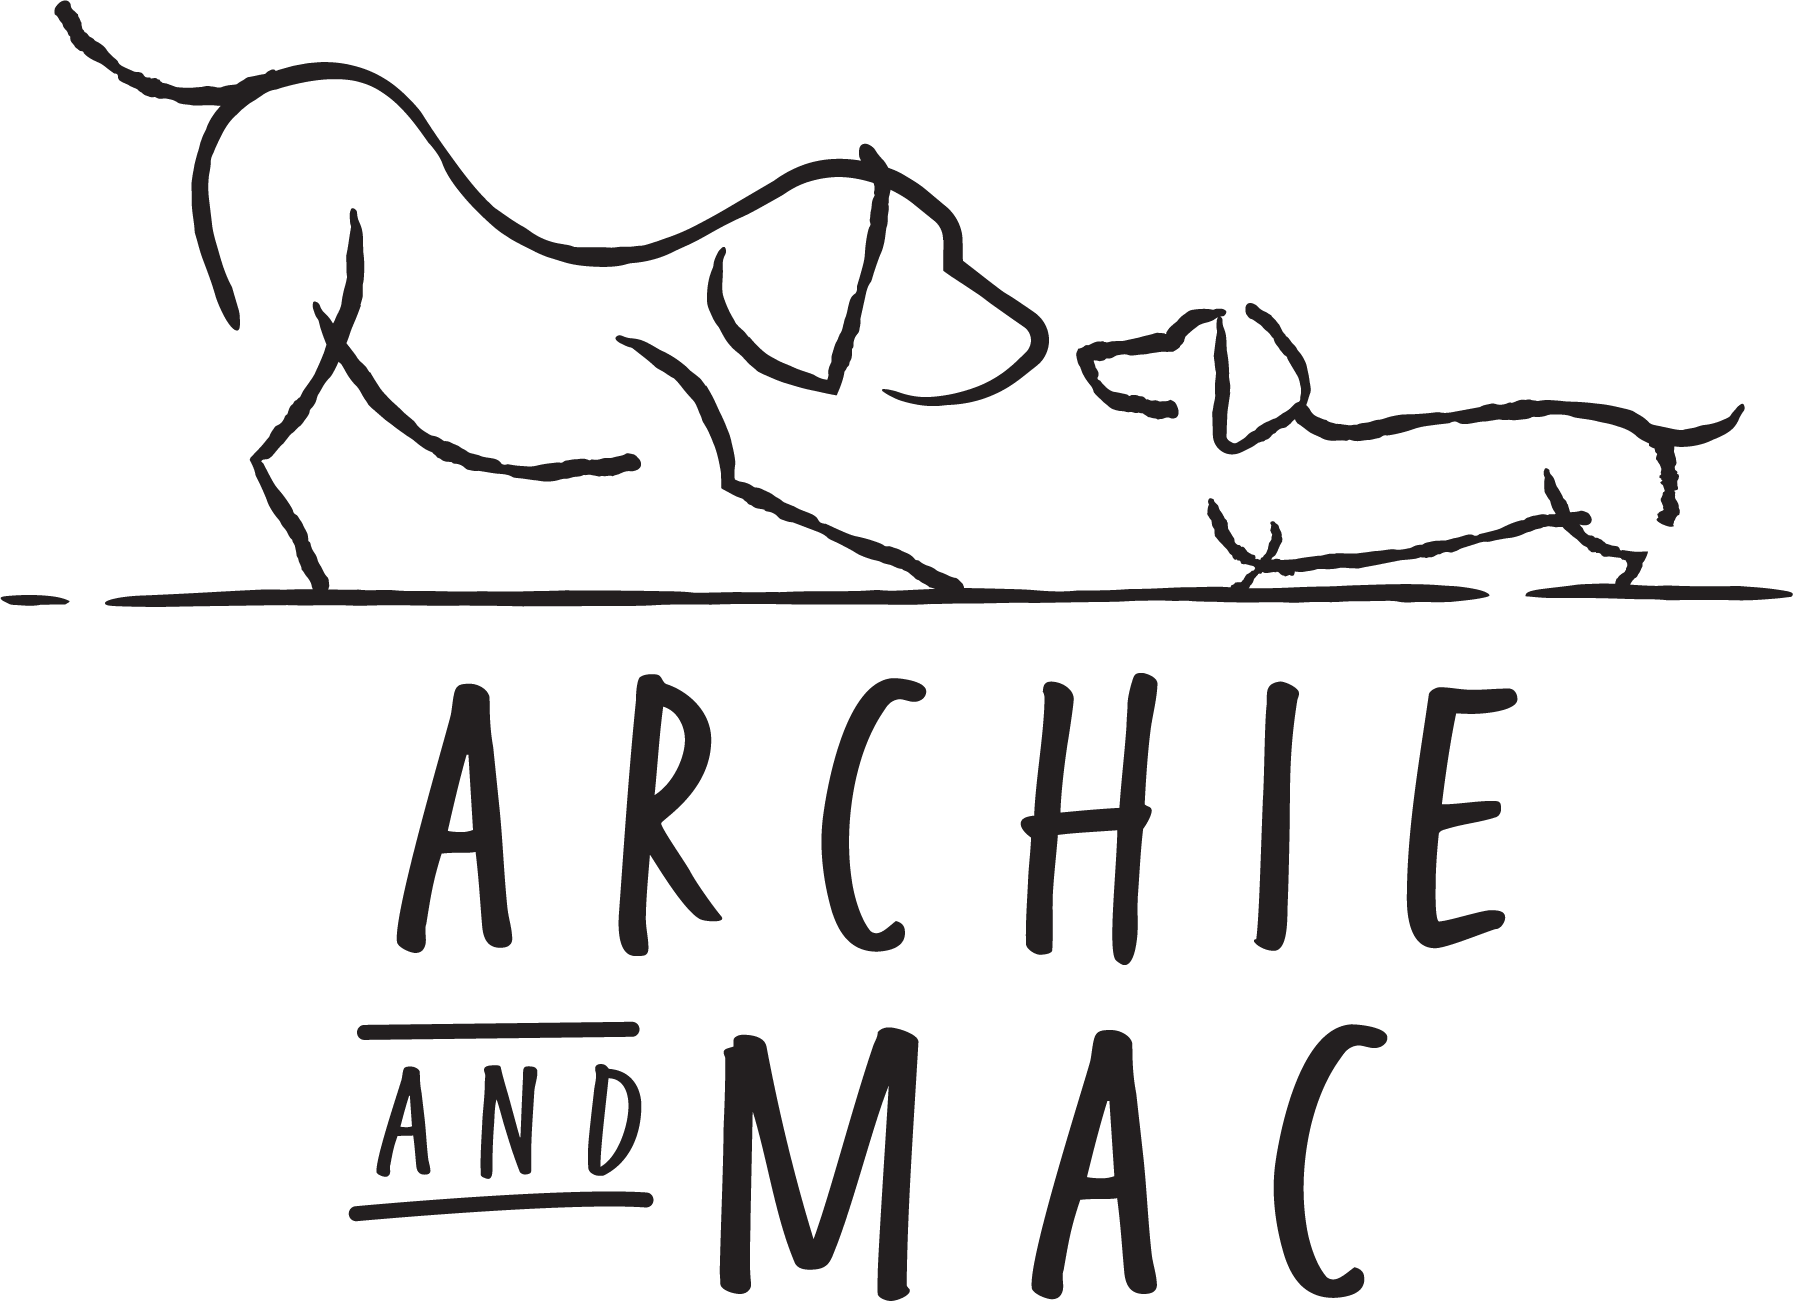 Logo needed for a fun new dog treat brand